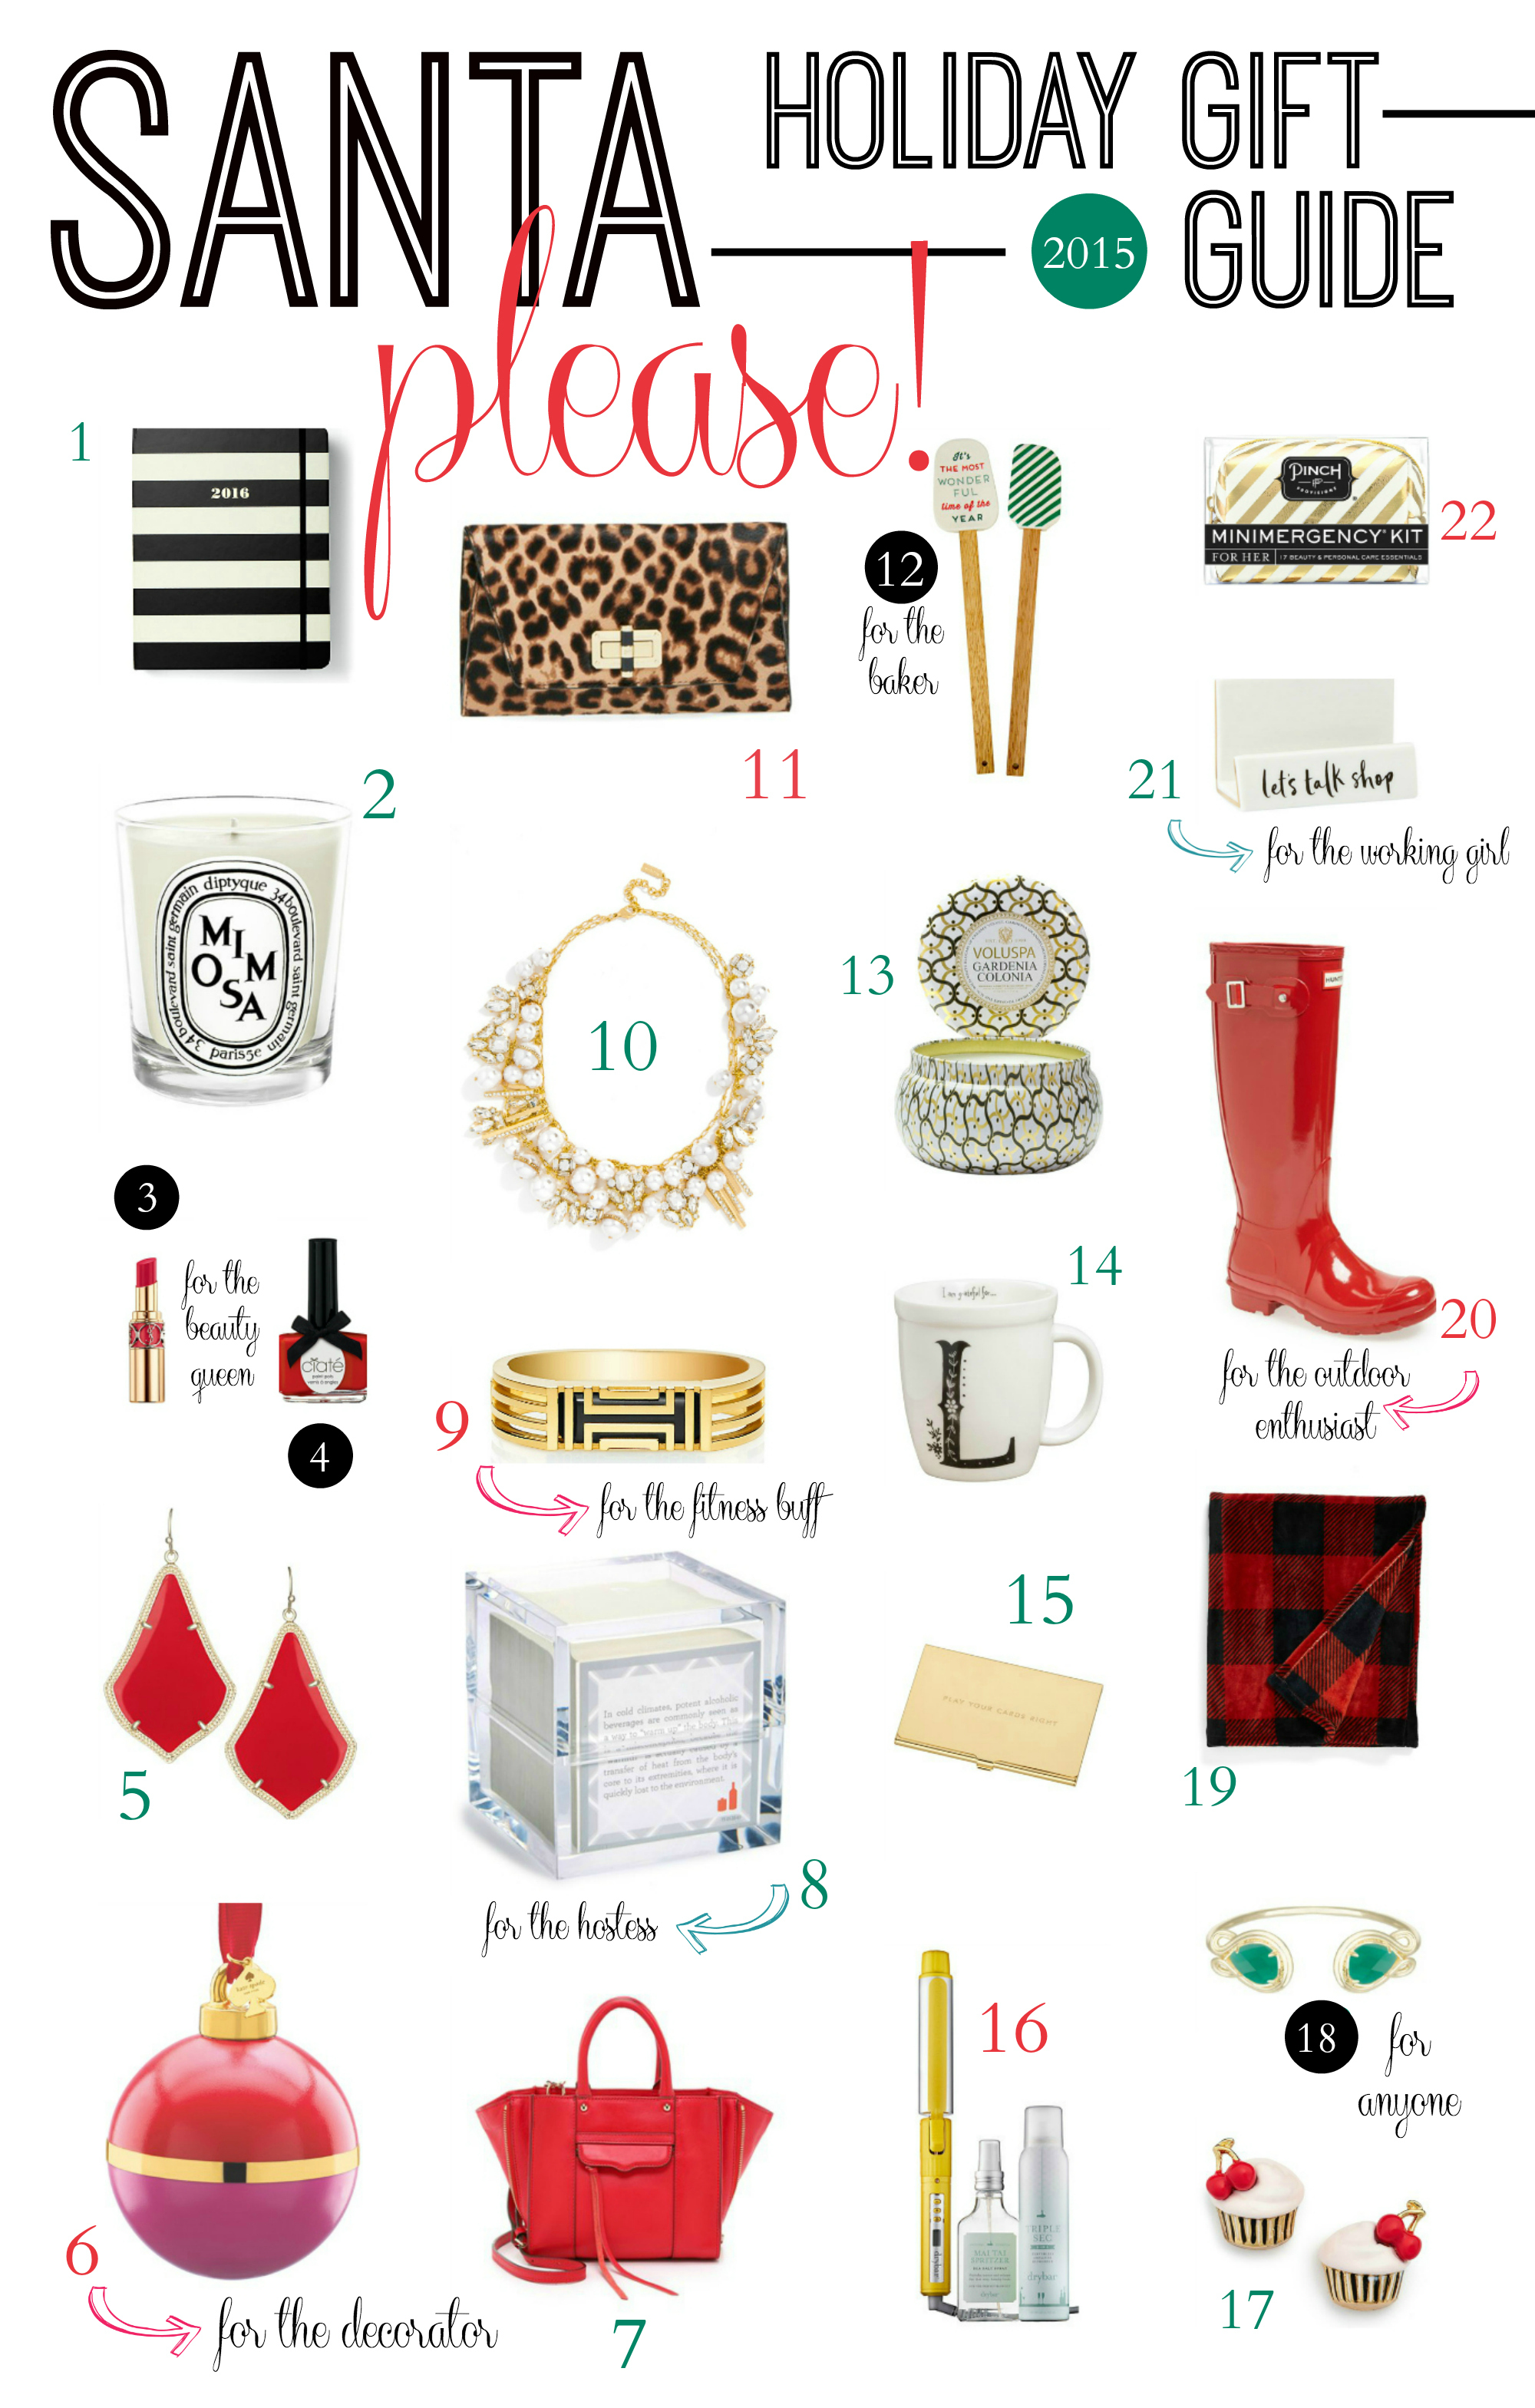 The best holiday gift guide for all the ladies on your list in 2015! Check out trendy items that she'll love and that'll fit within your budget.